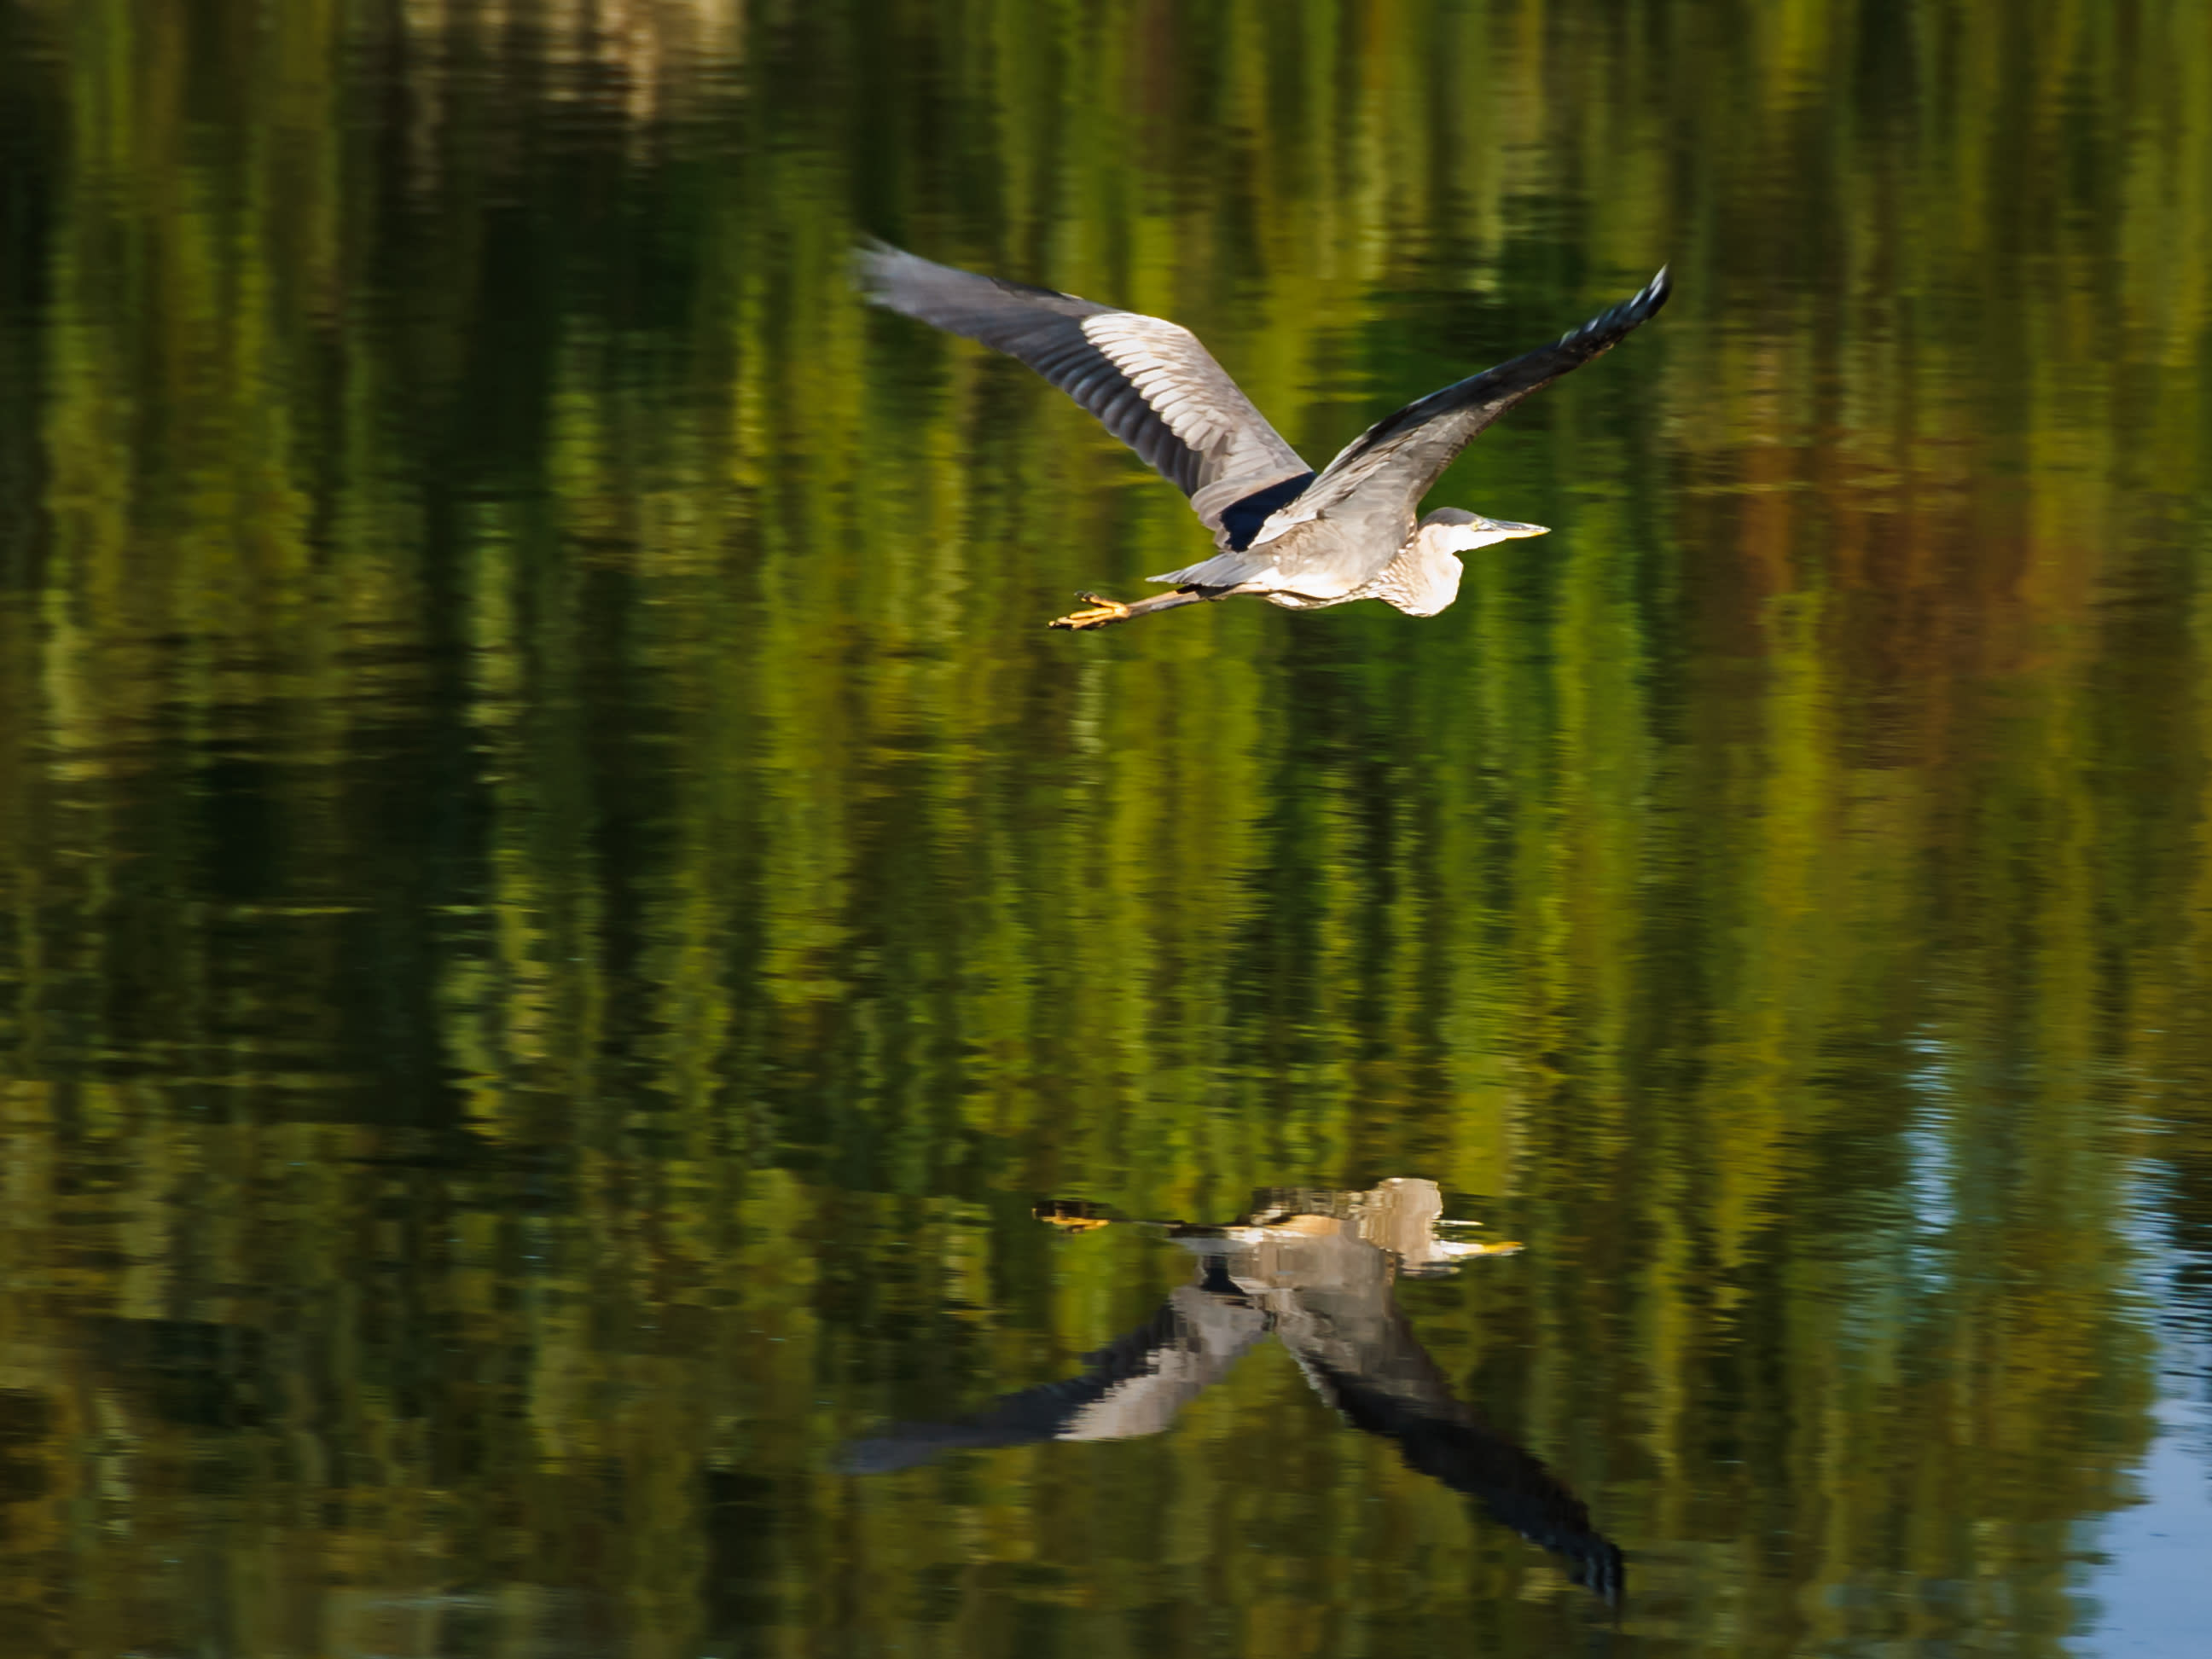 Blue heron over green forest reflection s5gqnz